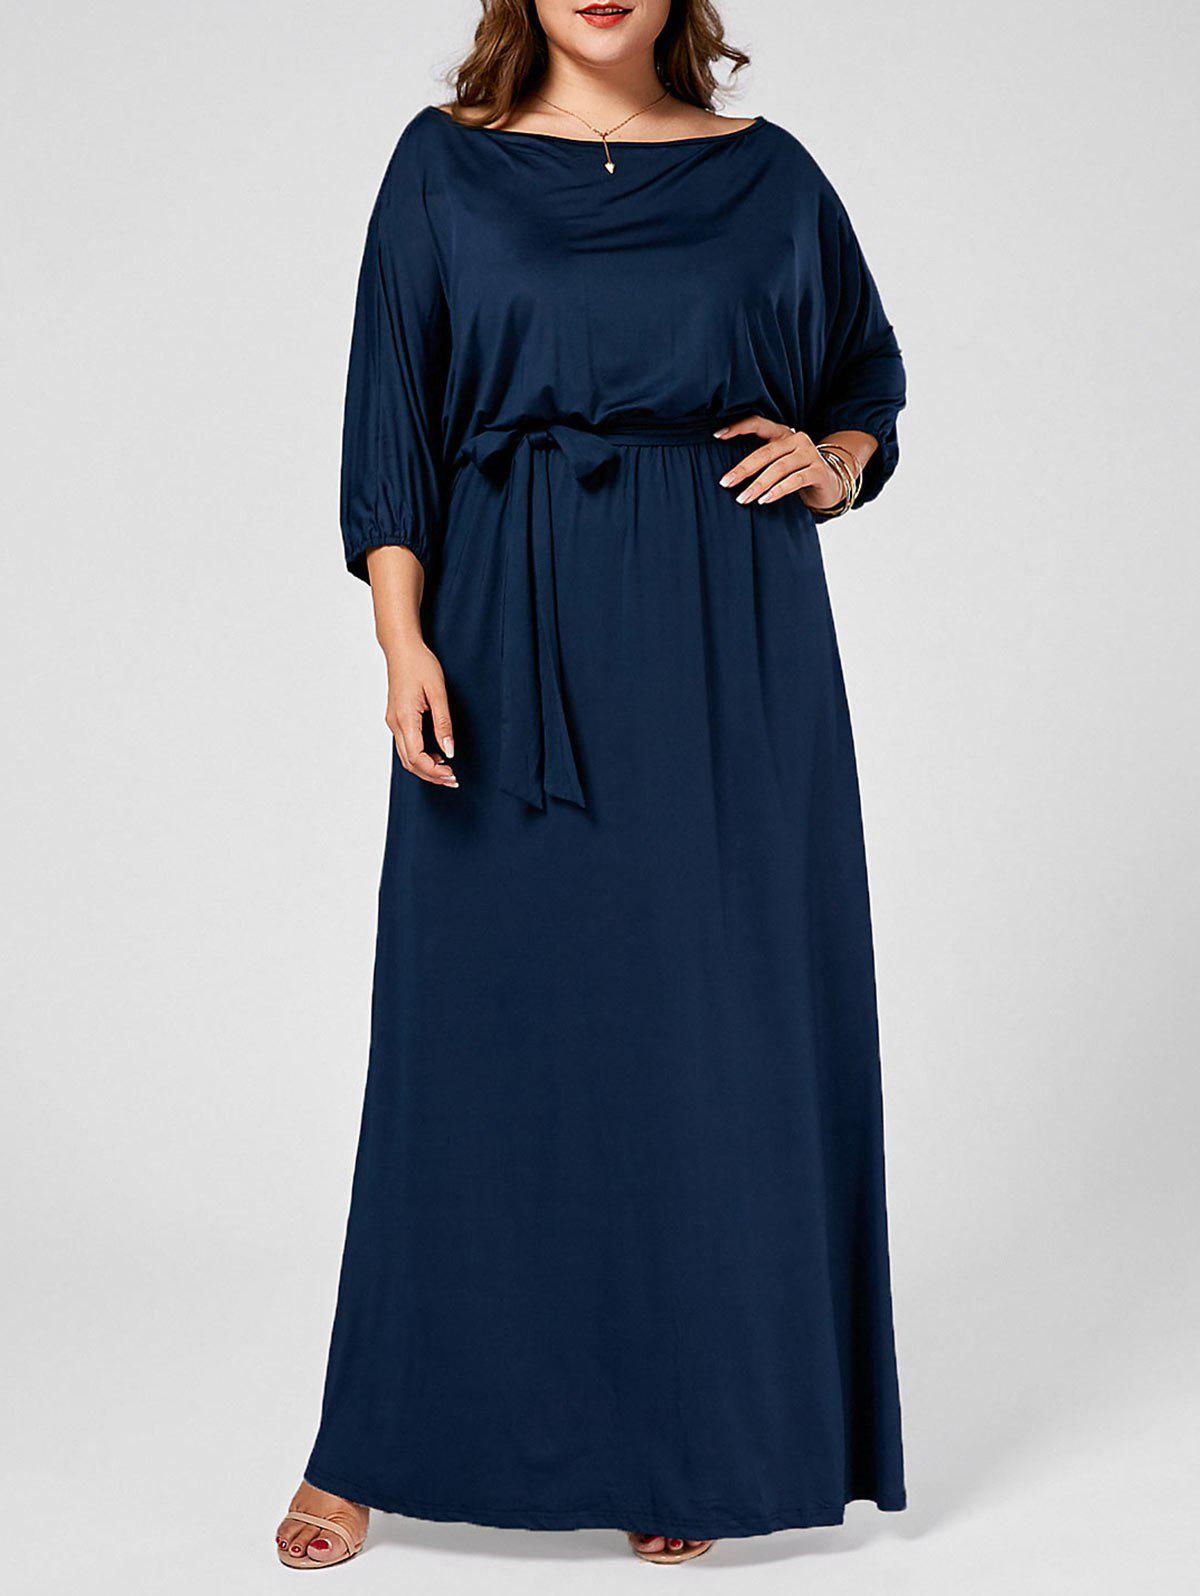 Plus Size Skew Neck Batwing Maxi Dress - PURPLISH BLUE 4XL